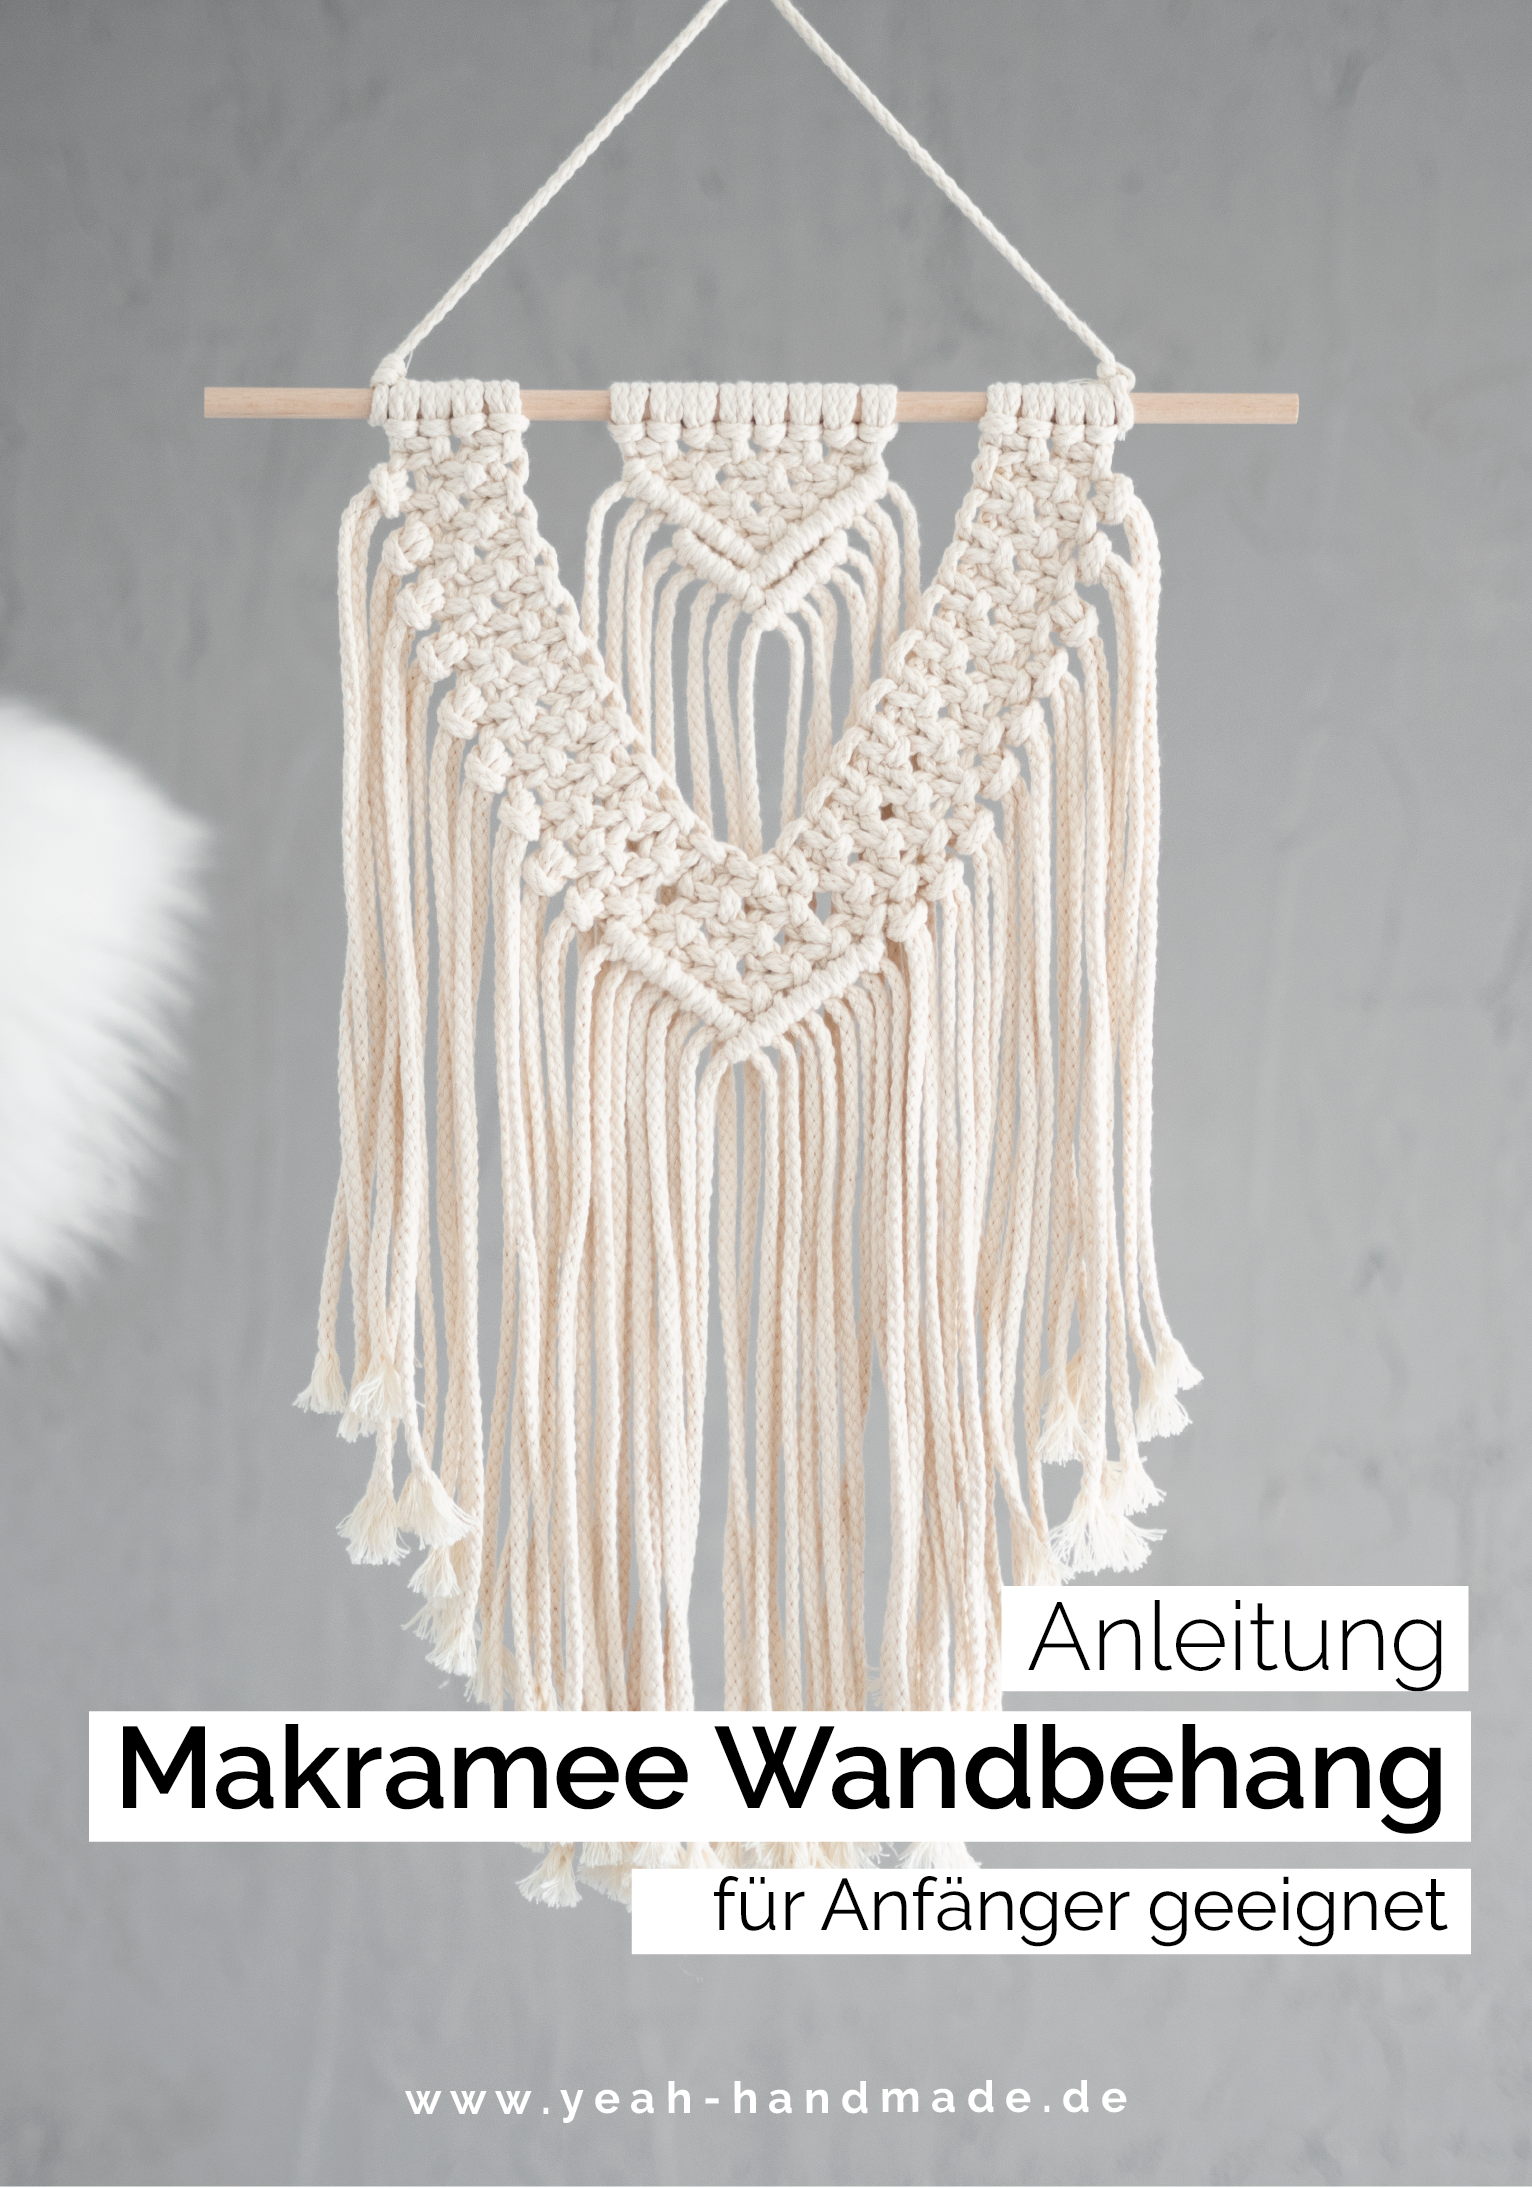 Diy Macrame Instructions Wall Hanging Pdf Guide Step By Step Make Decoration Or Gift Yourself Learn Macrame In 2020 Makramee Anleitung Wandbehang Wandbehang Makramee Anleitung